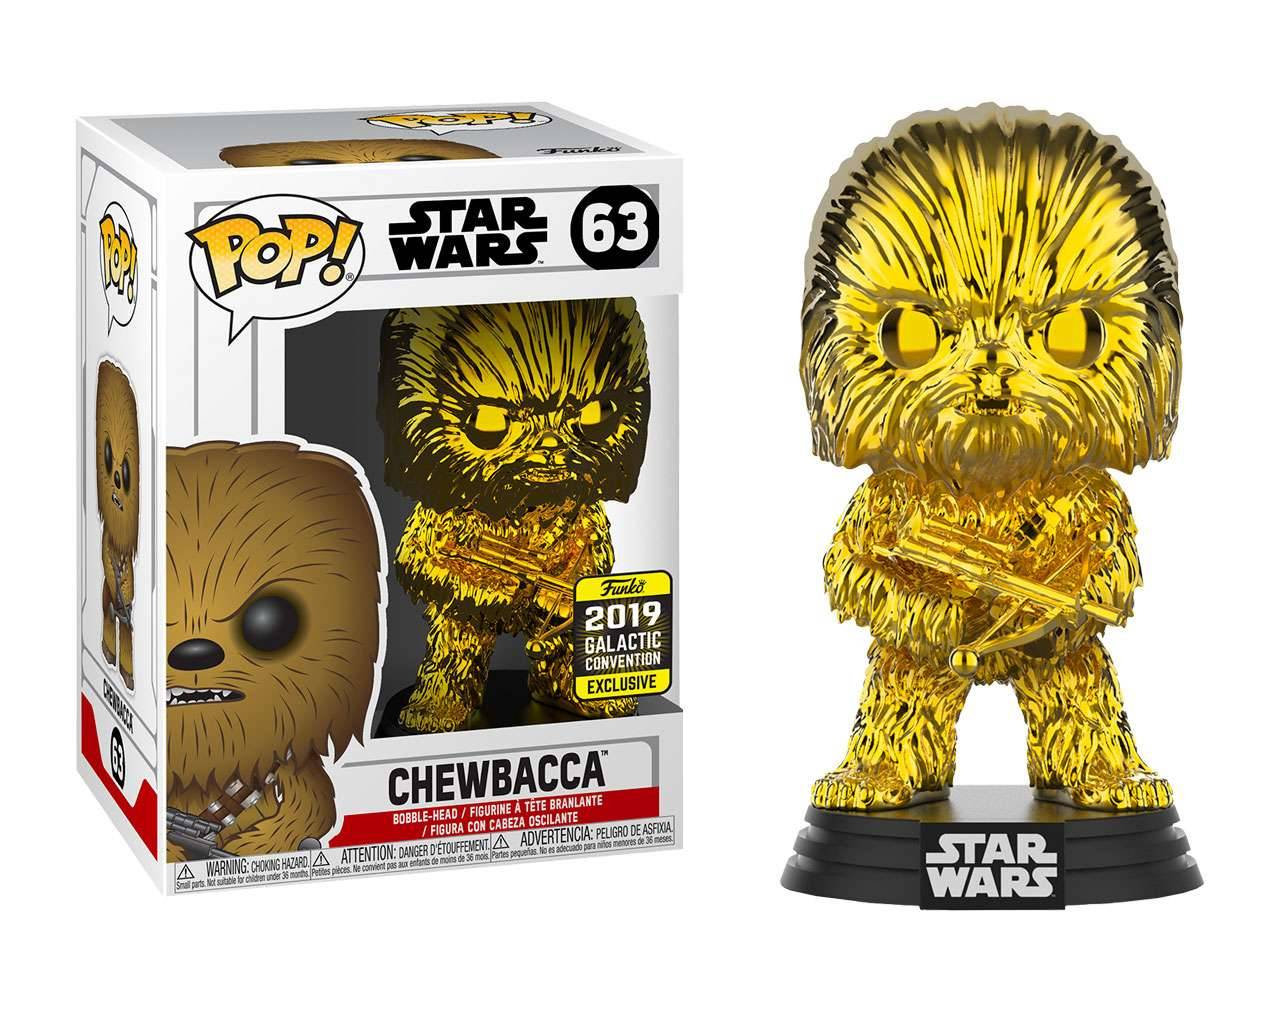 Chewbacca (Galactic Convention 2019) Pop! Vinyl